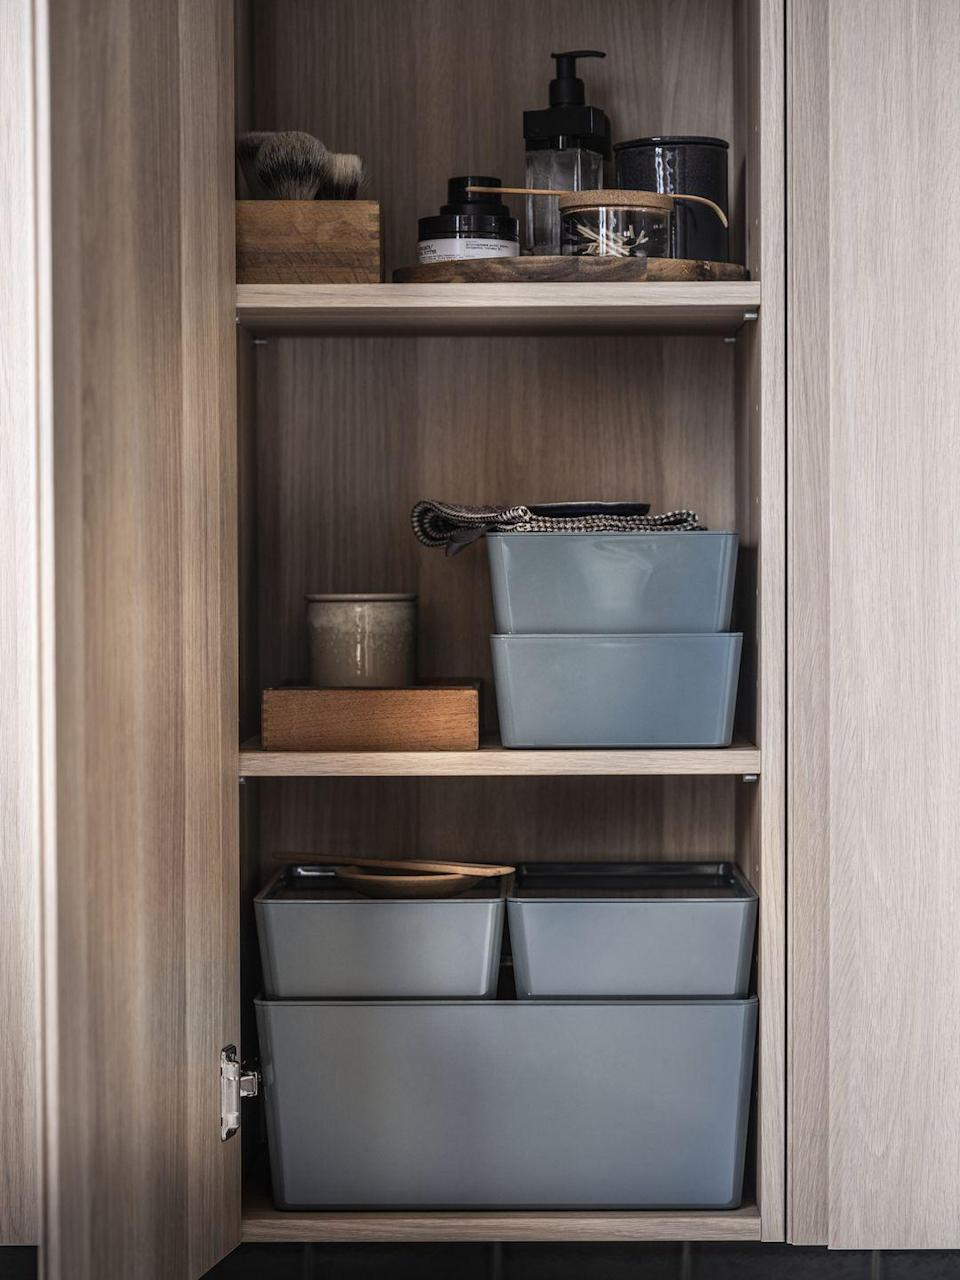 """<p>Clear clutter around your home with IKEA's collection of practical boxes and baskets. Whether you're looking to tidy your <a href=""""https://www.countryliving.com/uk/homes-interiors/interiors/a34722445/how-to-declutter-a-hallway/"""" rel=""""nofollow noopener"""" target=""""_blank"""" data-ylk=""""slk:hallway"""" class=""""link rapid-noclick-resp"""">hallway</a> or bathroom, there's something here for every space. </p><p>""""Store away smaller items whilst instilling an authentic, natural and handcrafted touch with the woven LOKALT basket,"""" Clotilde adds. </p><p>""""Made from banana bark rope, it's both sustainable and hardwearing, with the collection supporting refugee and local Jordanian women across the globe. The sleek VARIERA box is another handy and eco-friendly option, with its bamboo material giving a warm and finished expression, whilst saving space with its stackable feature.""""</p>"""